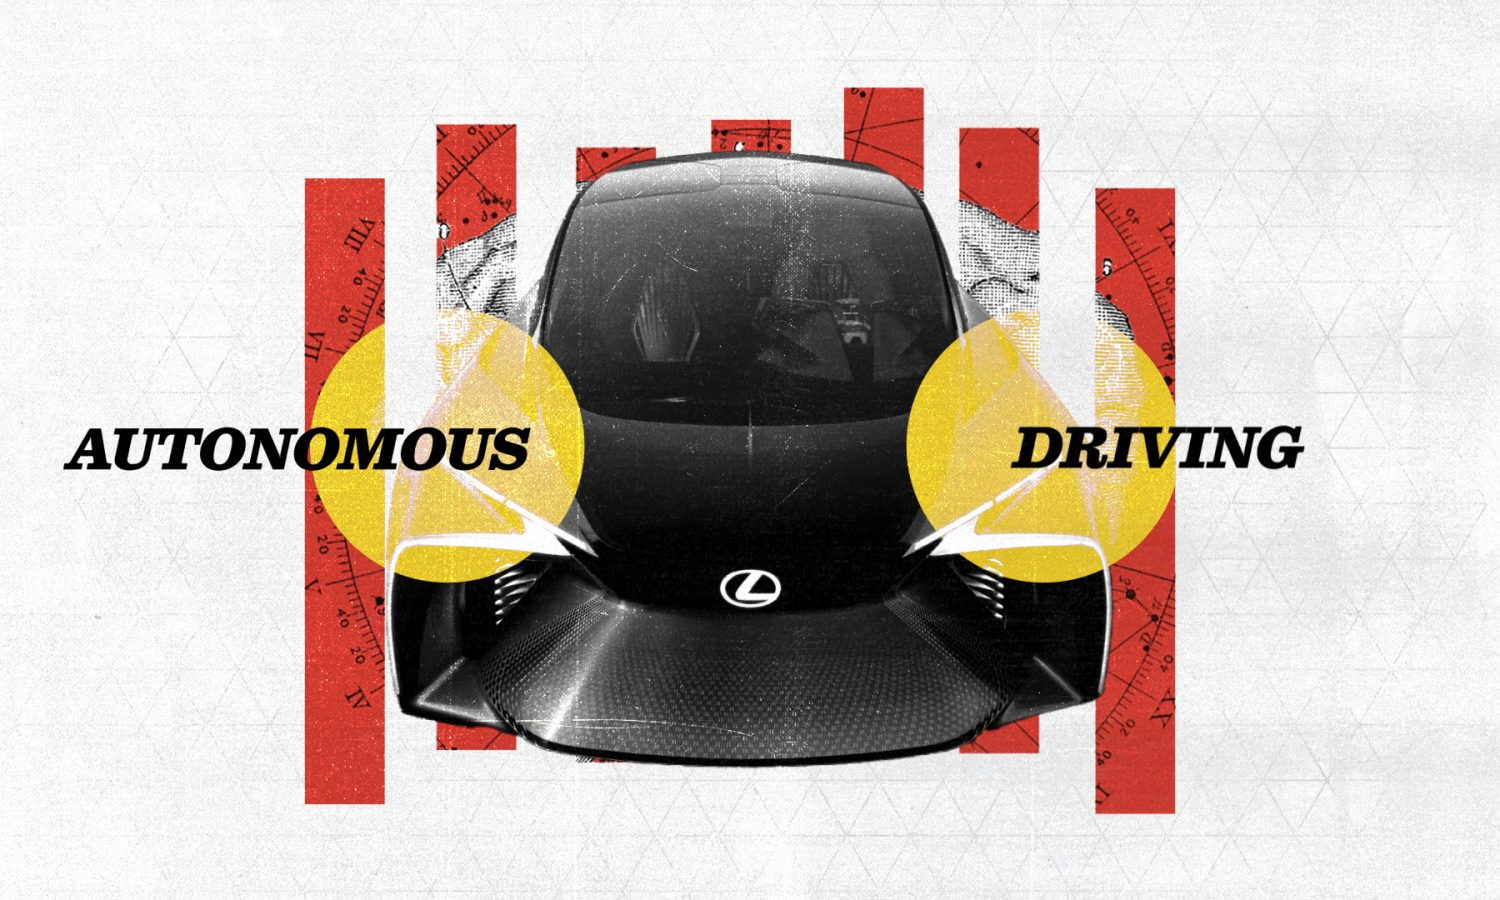 Lexus and TED Reimagine the Automated Vehicle of the Future